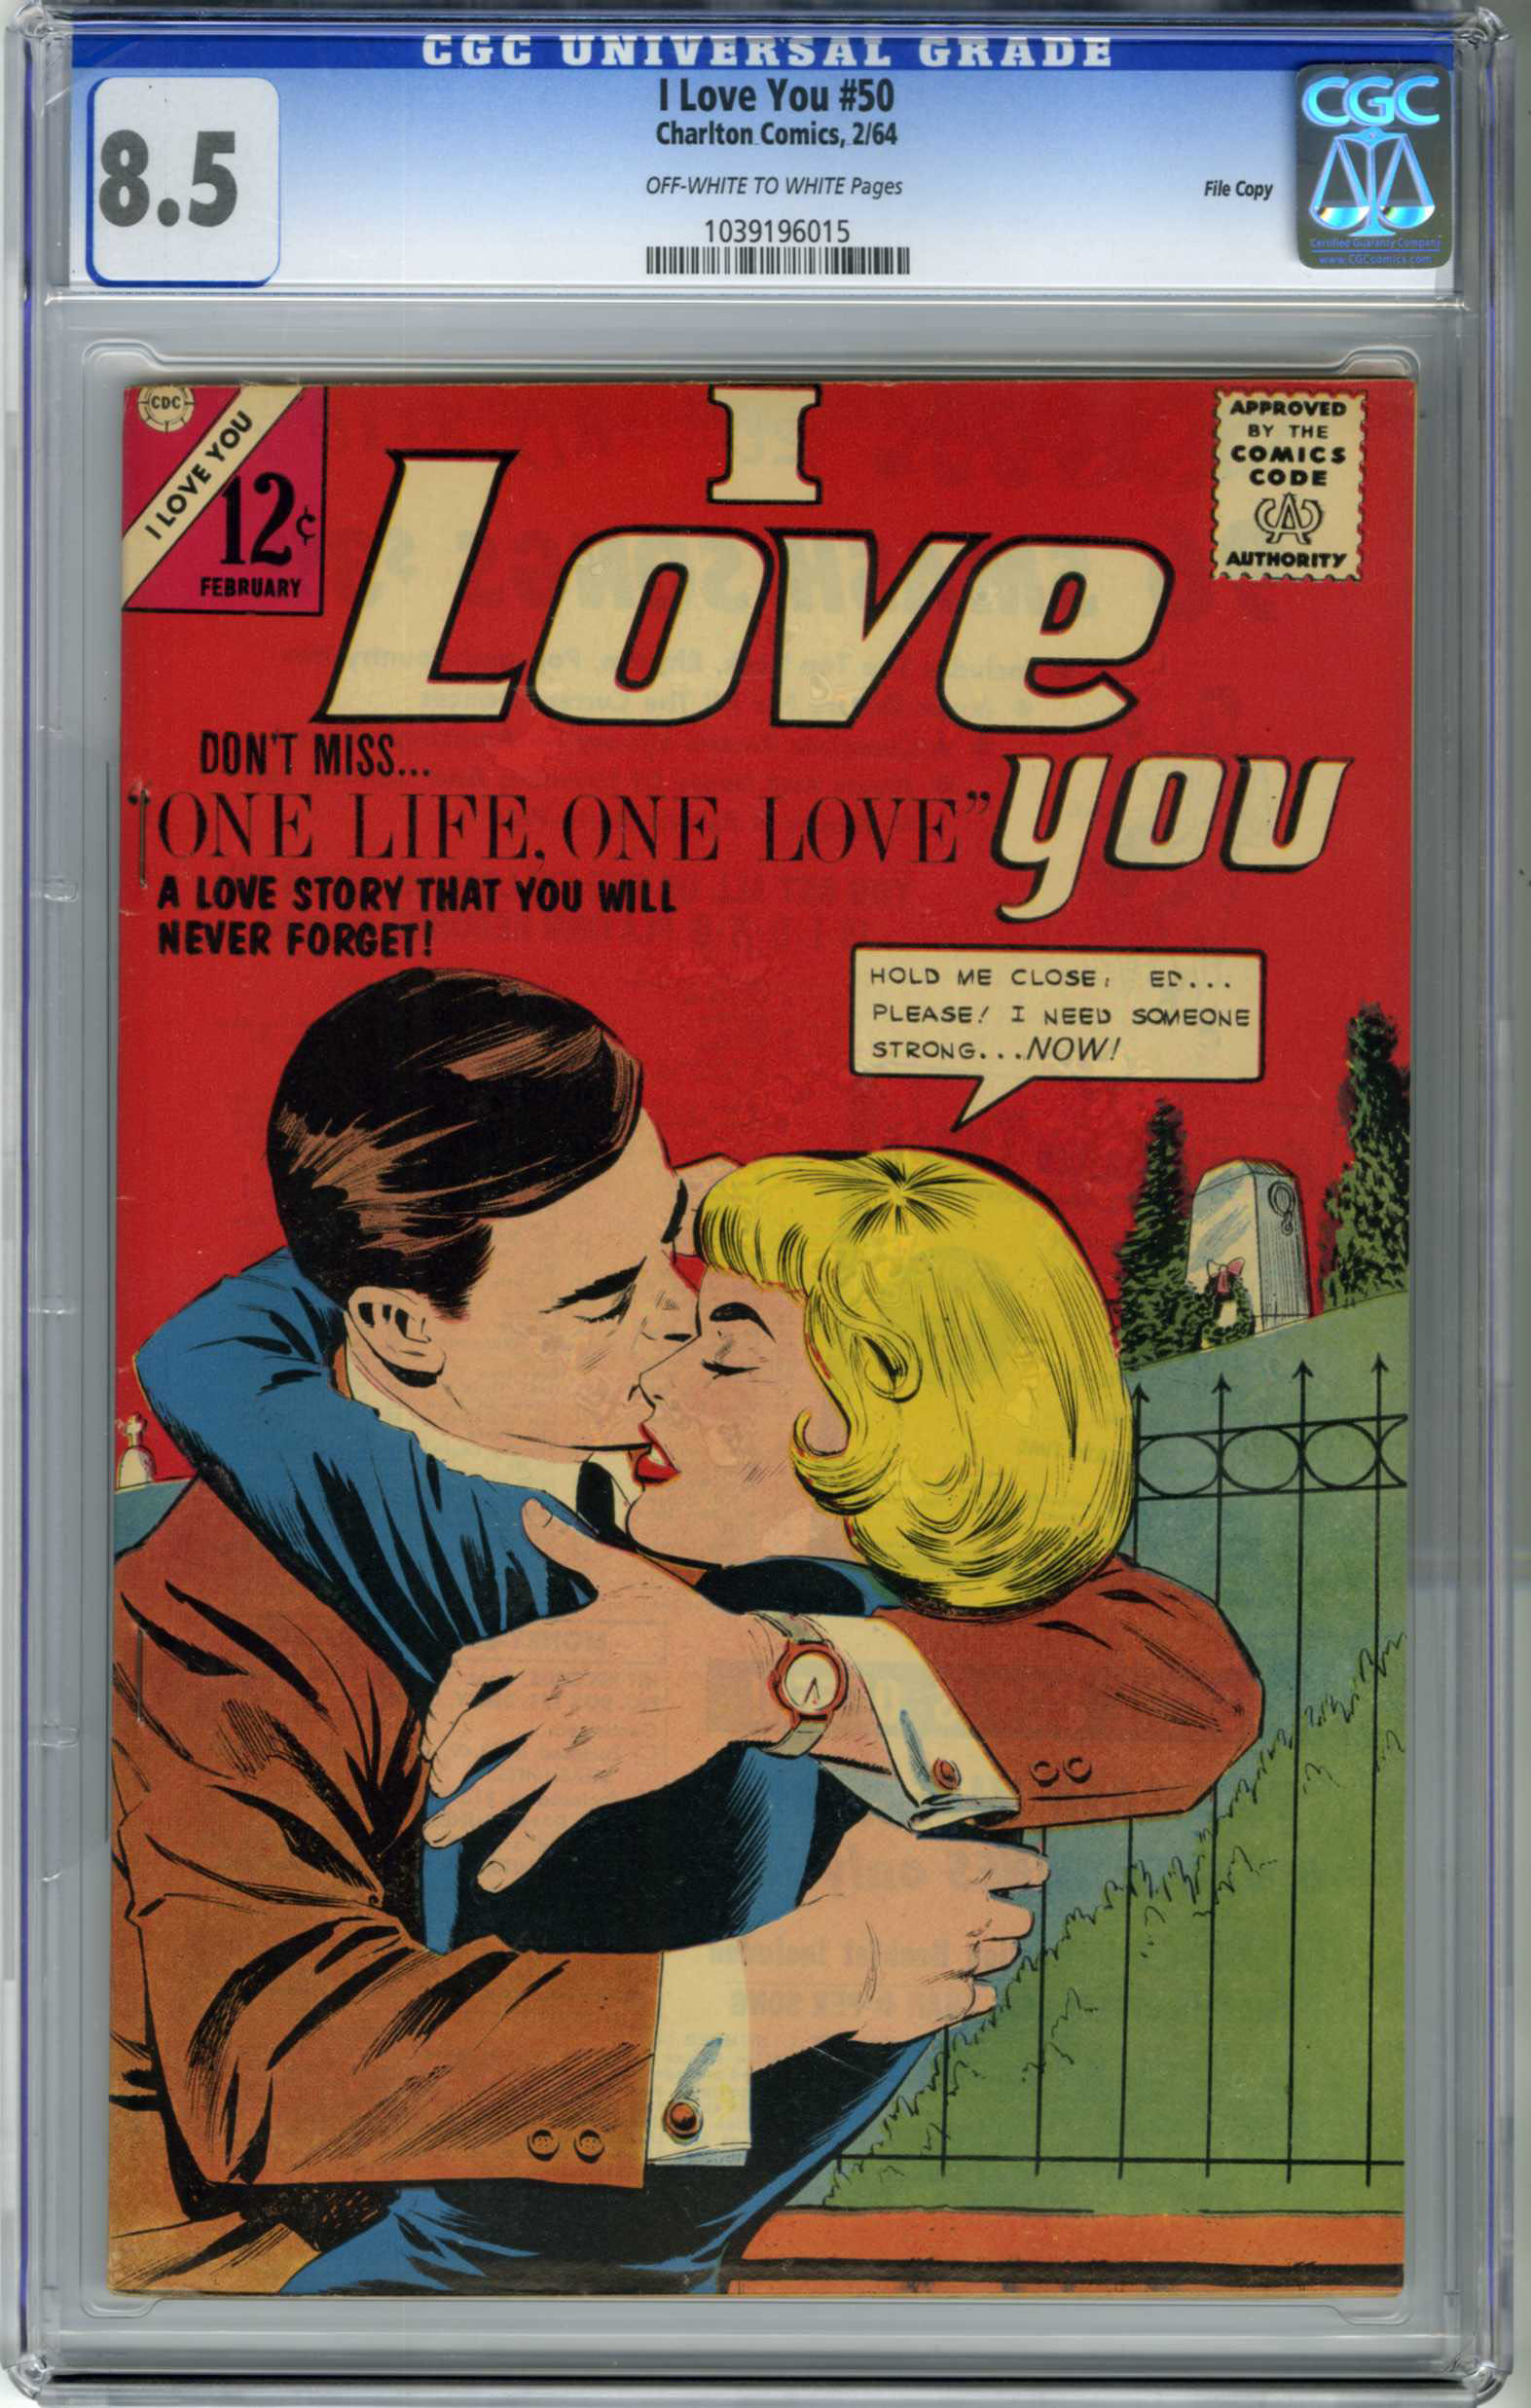 I LOVE YOU #50 (1964) CGC VF+ 8.5 OWW Pages / FILE COPY / ONE LIFE - ONE LOVE